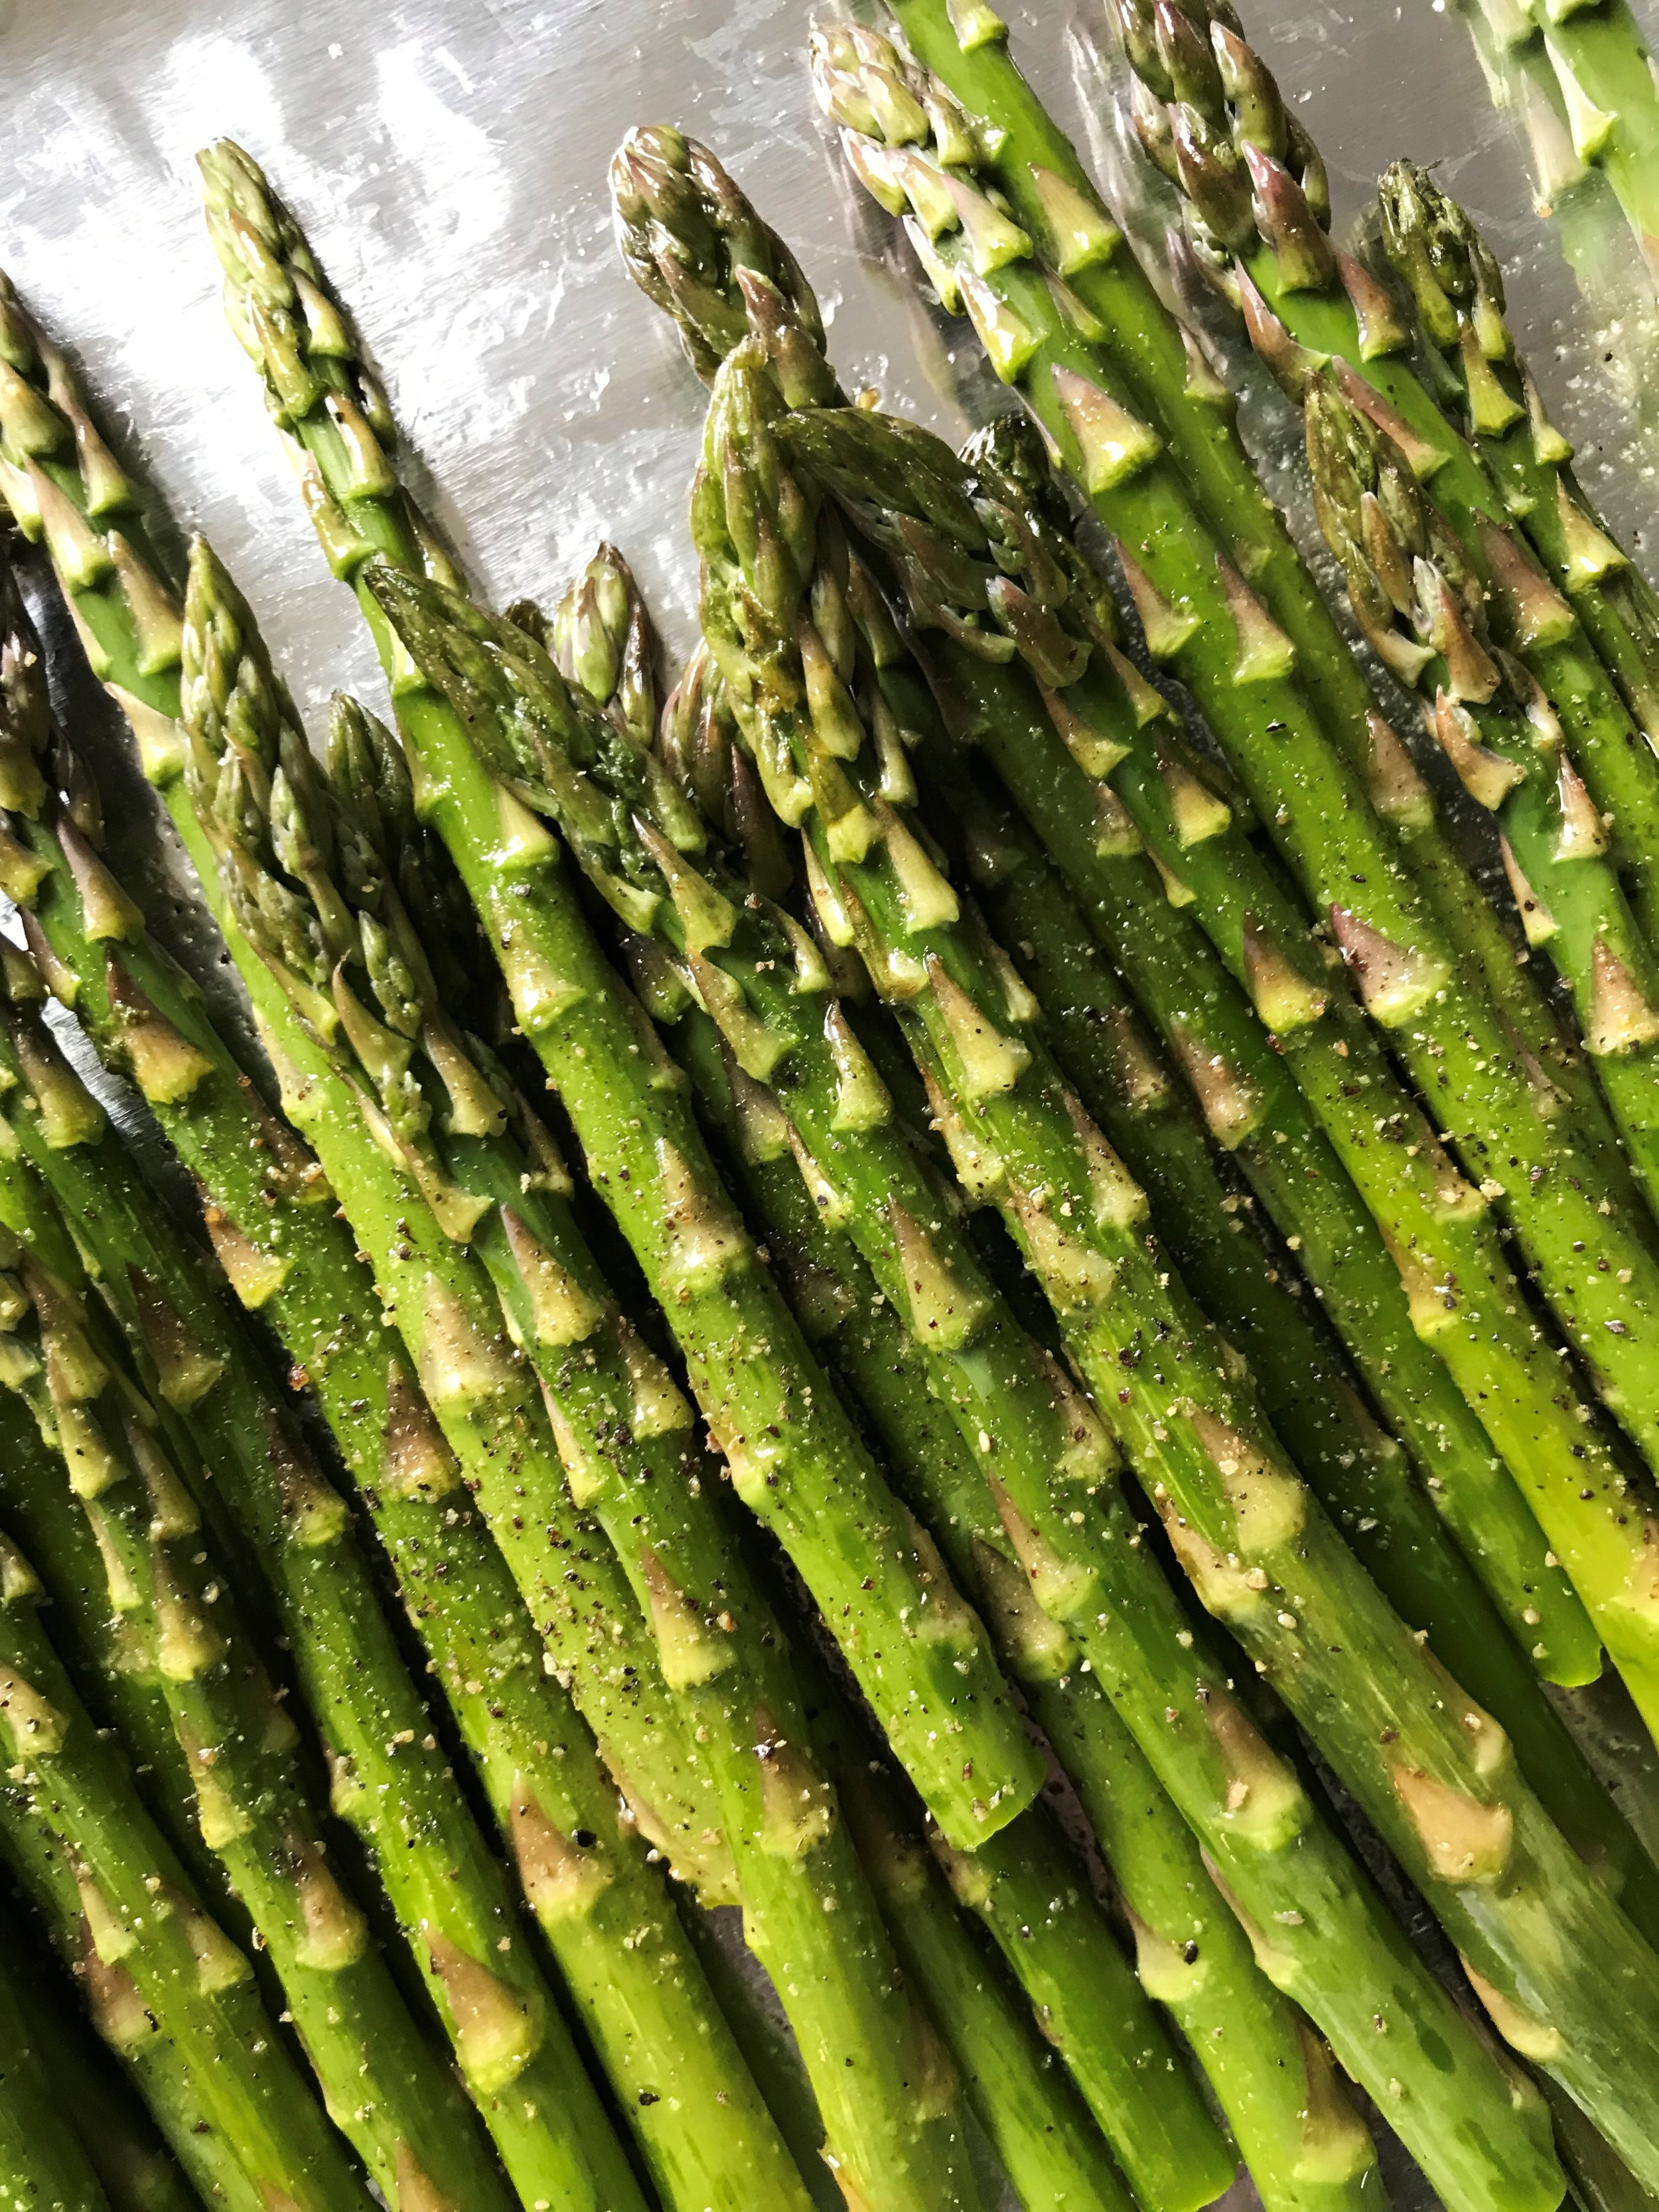 Pretty green asparagus spears ready to be roasted.